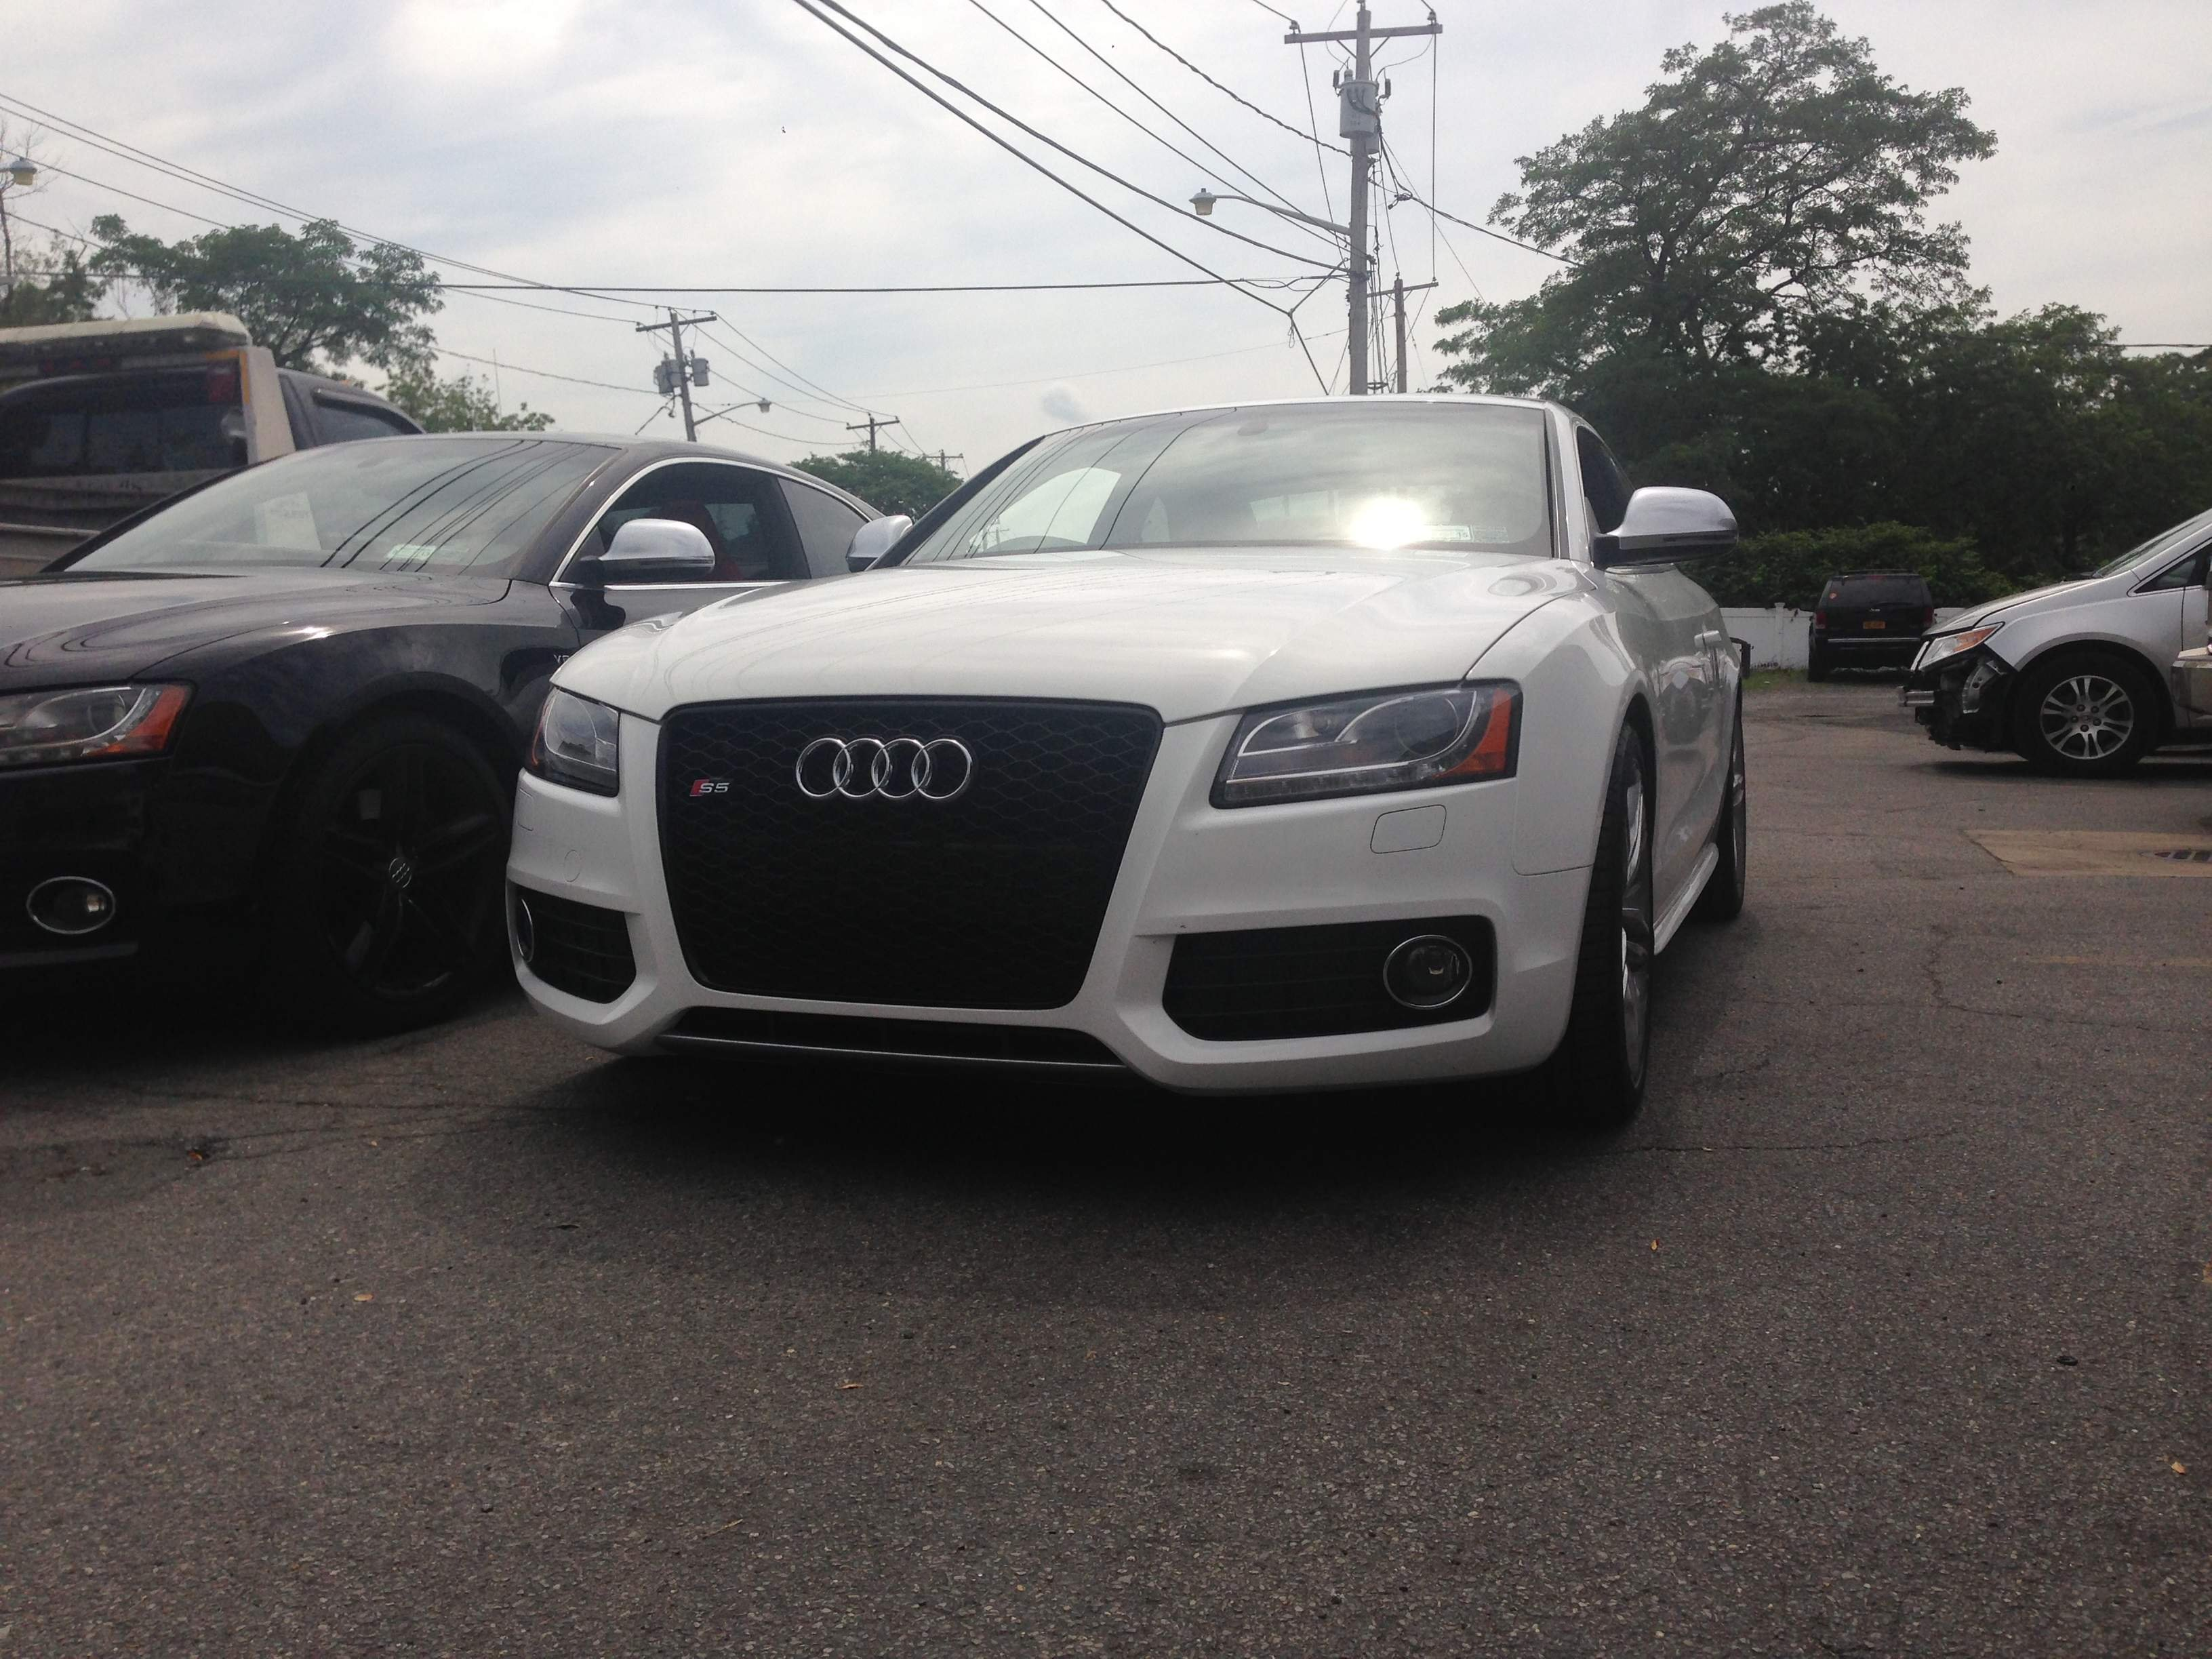 an forums forum larger someone for img westchester orange image click can ps name audi photos views videos me attachment version in jpg